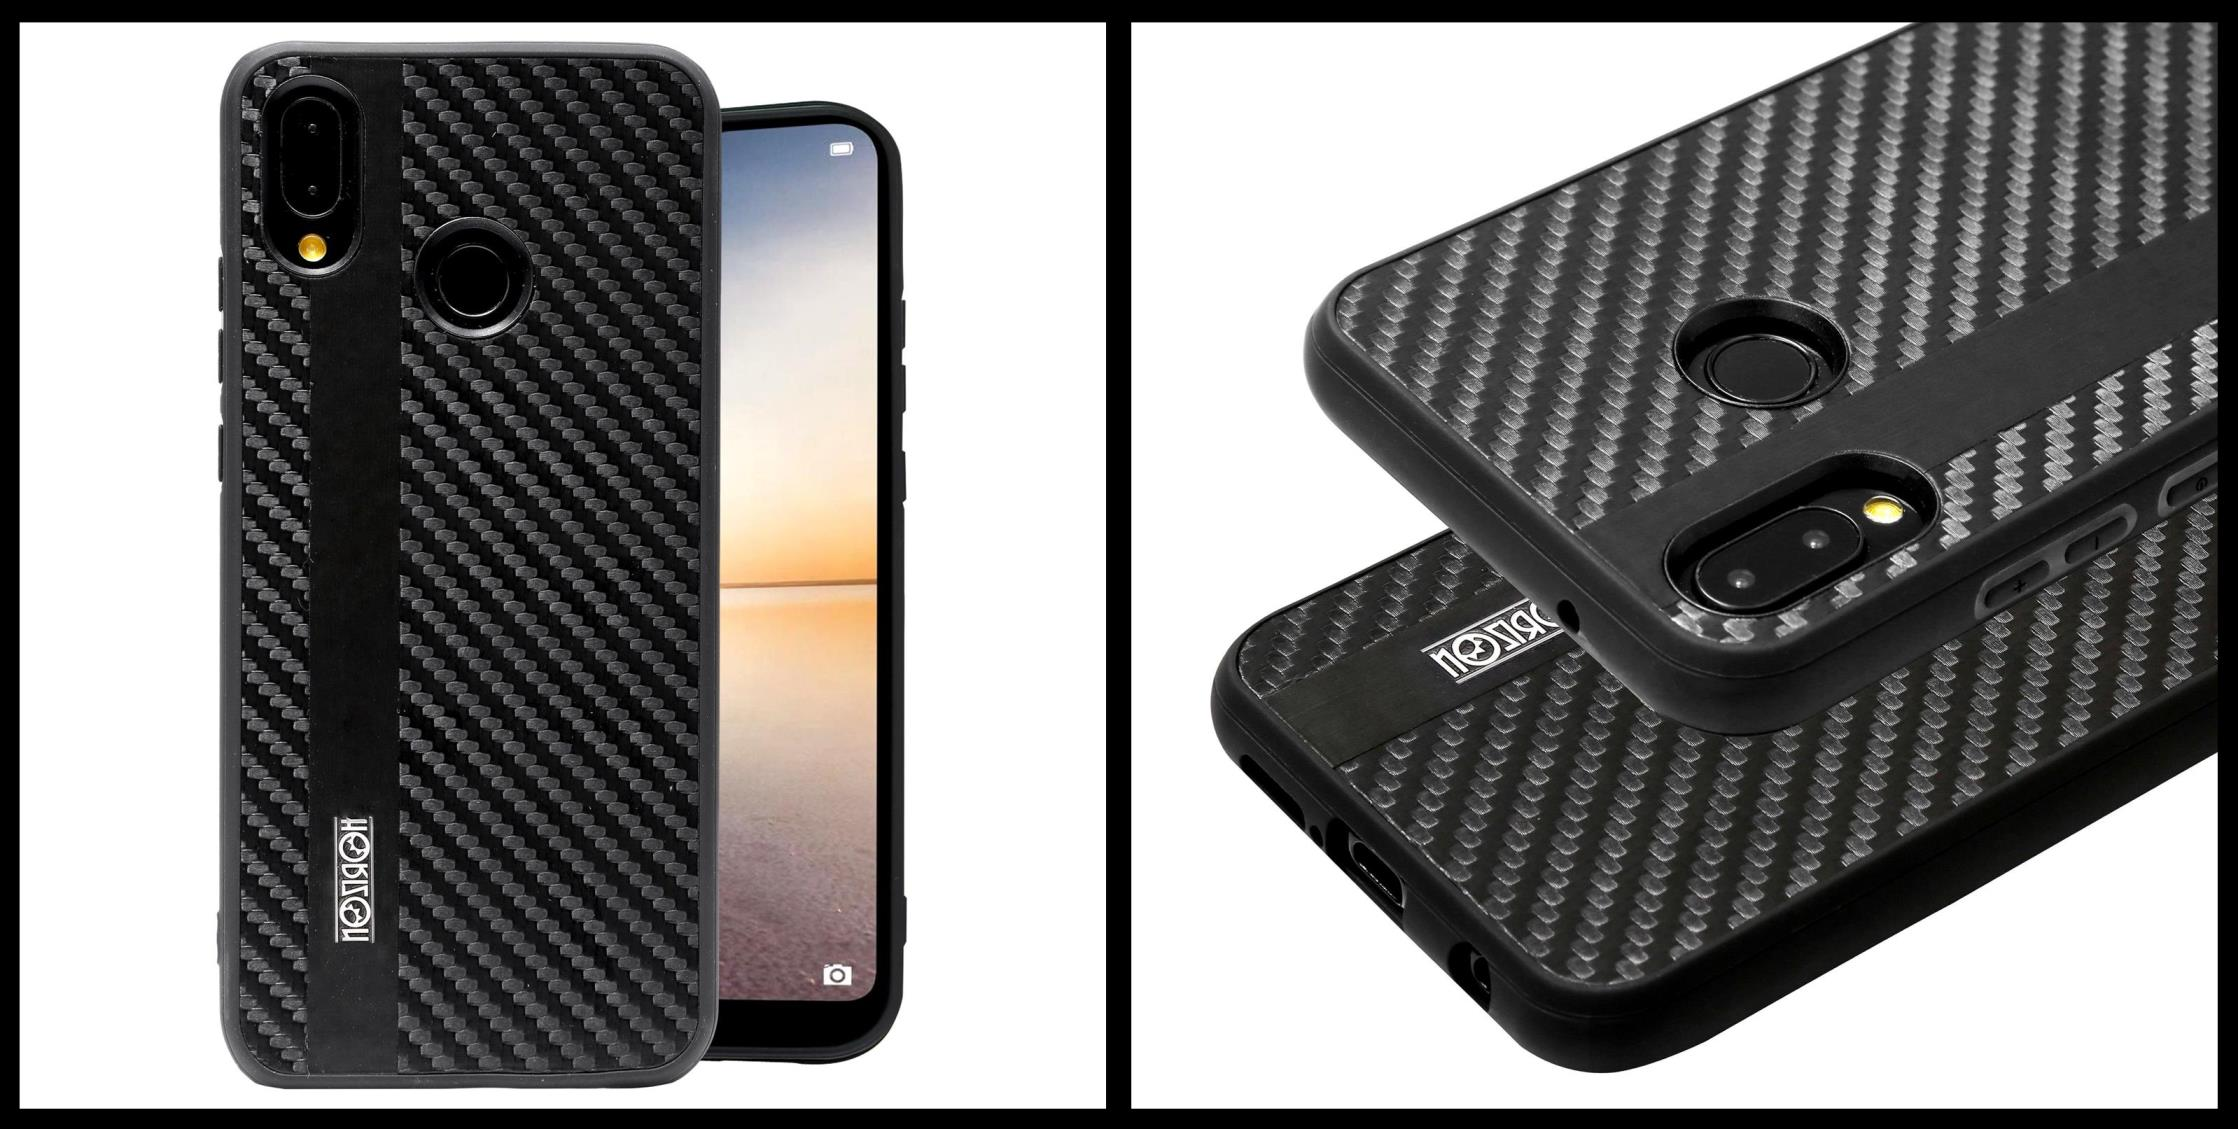 noziroh-carbon-huawei-p20-lite-cover-case-shockproof-dark-design-black